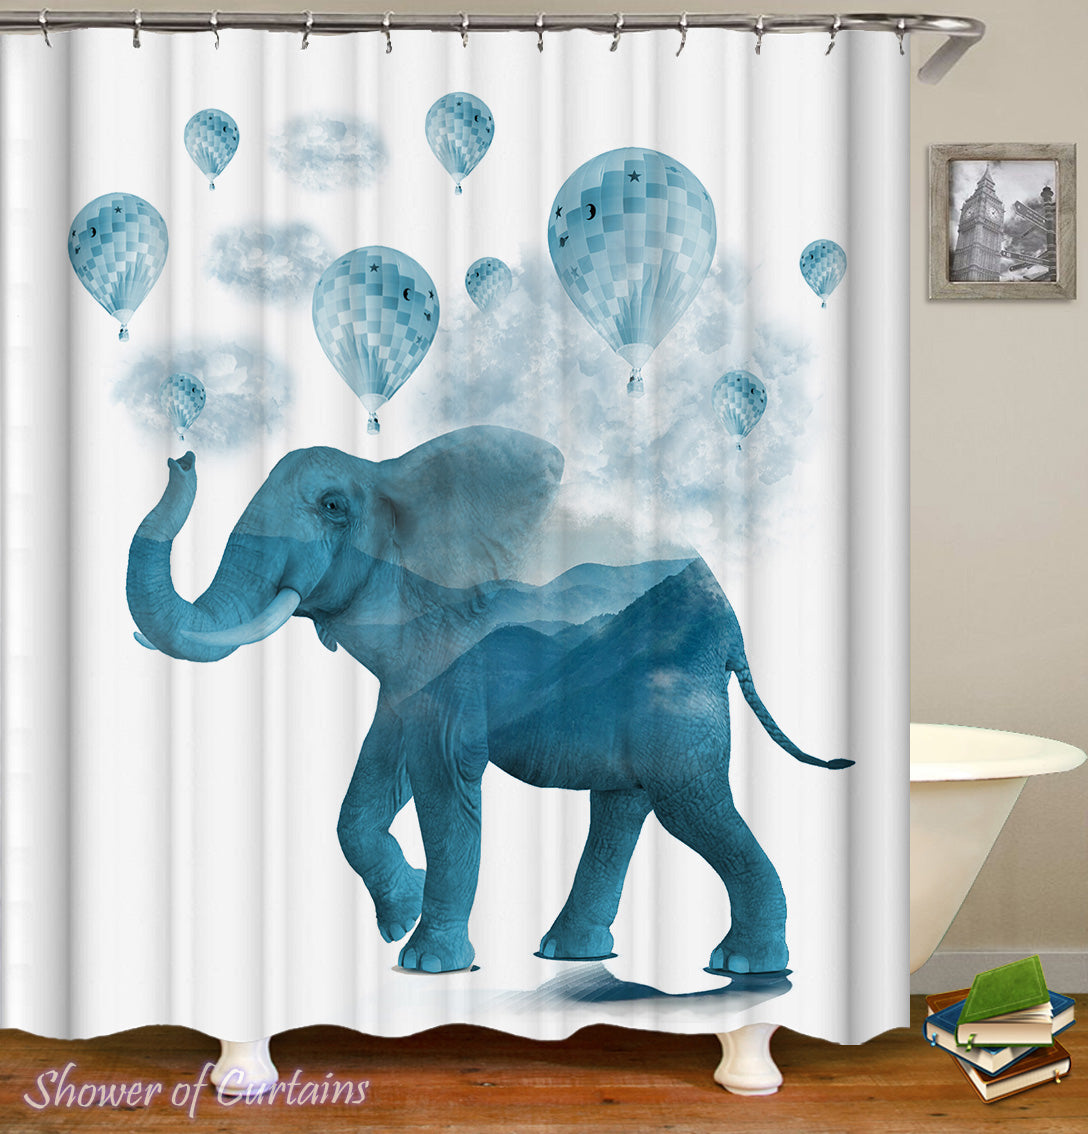 Elephant Bathroom Decor Of Blue Hot Air Balloons And Shower Curtain